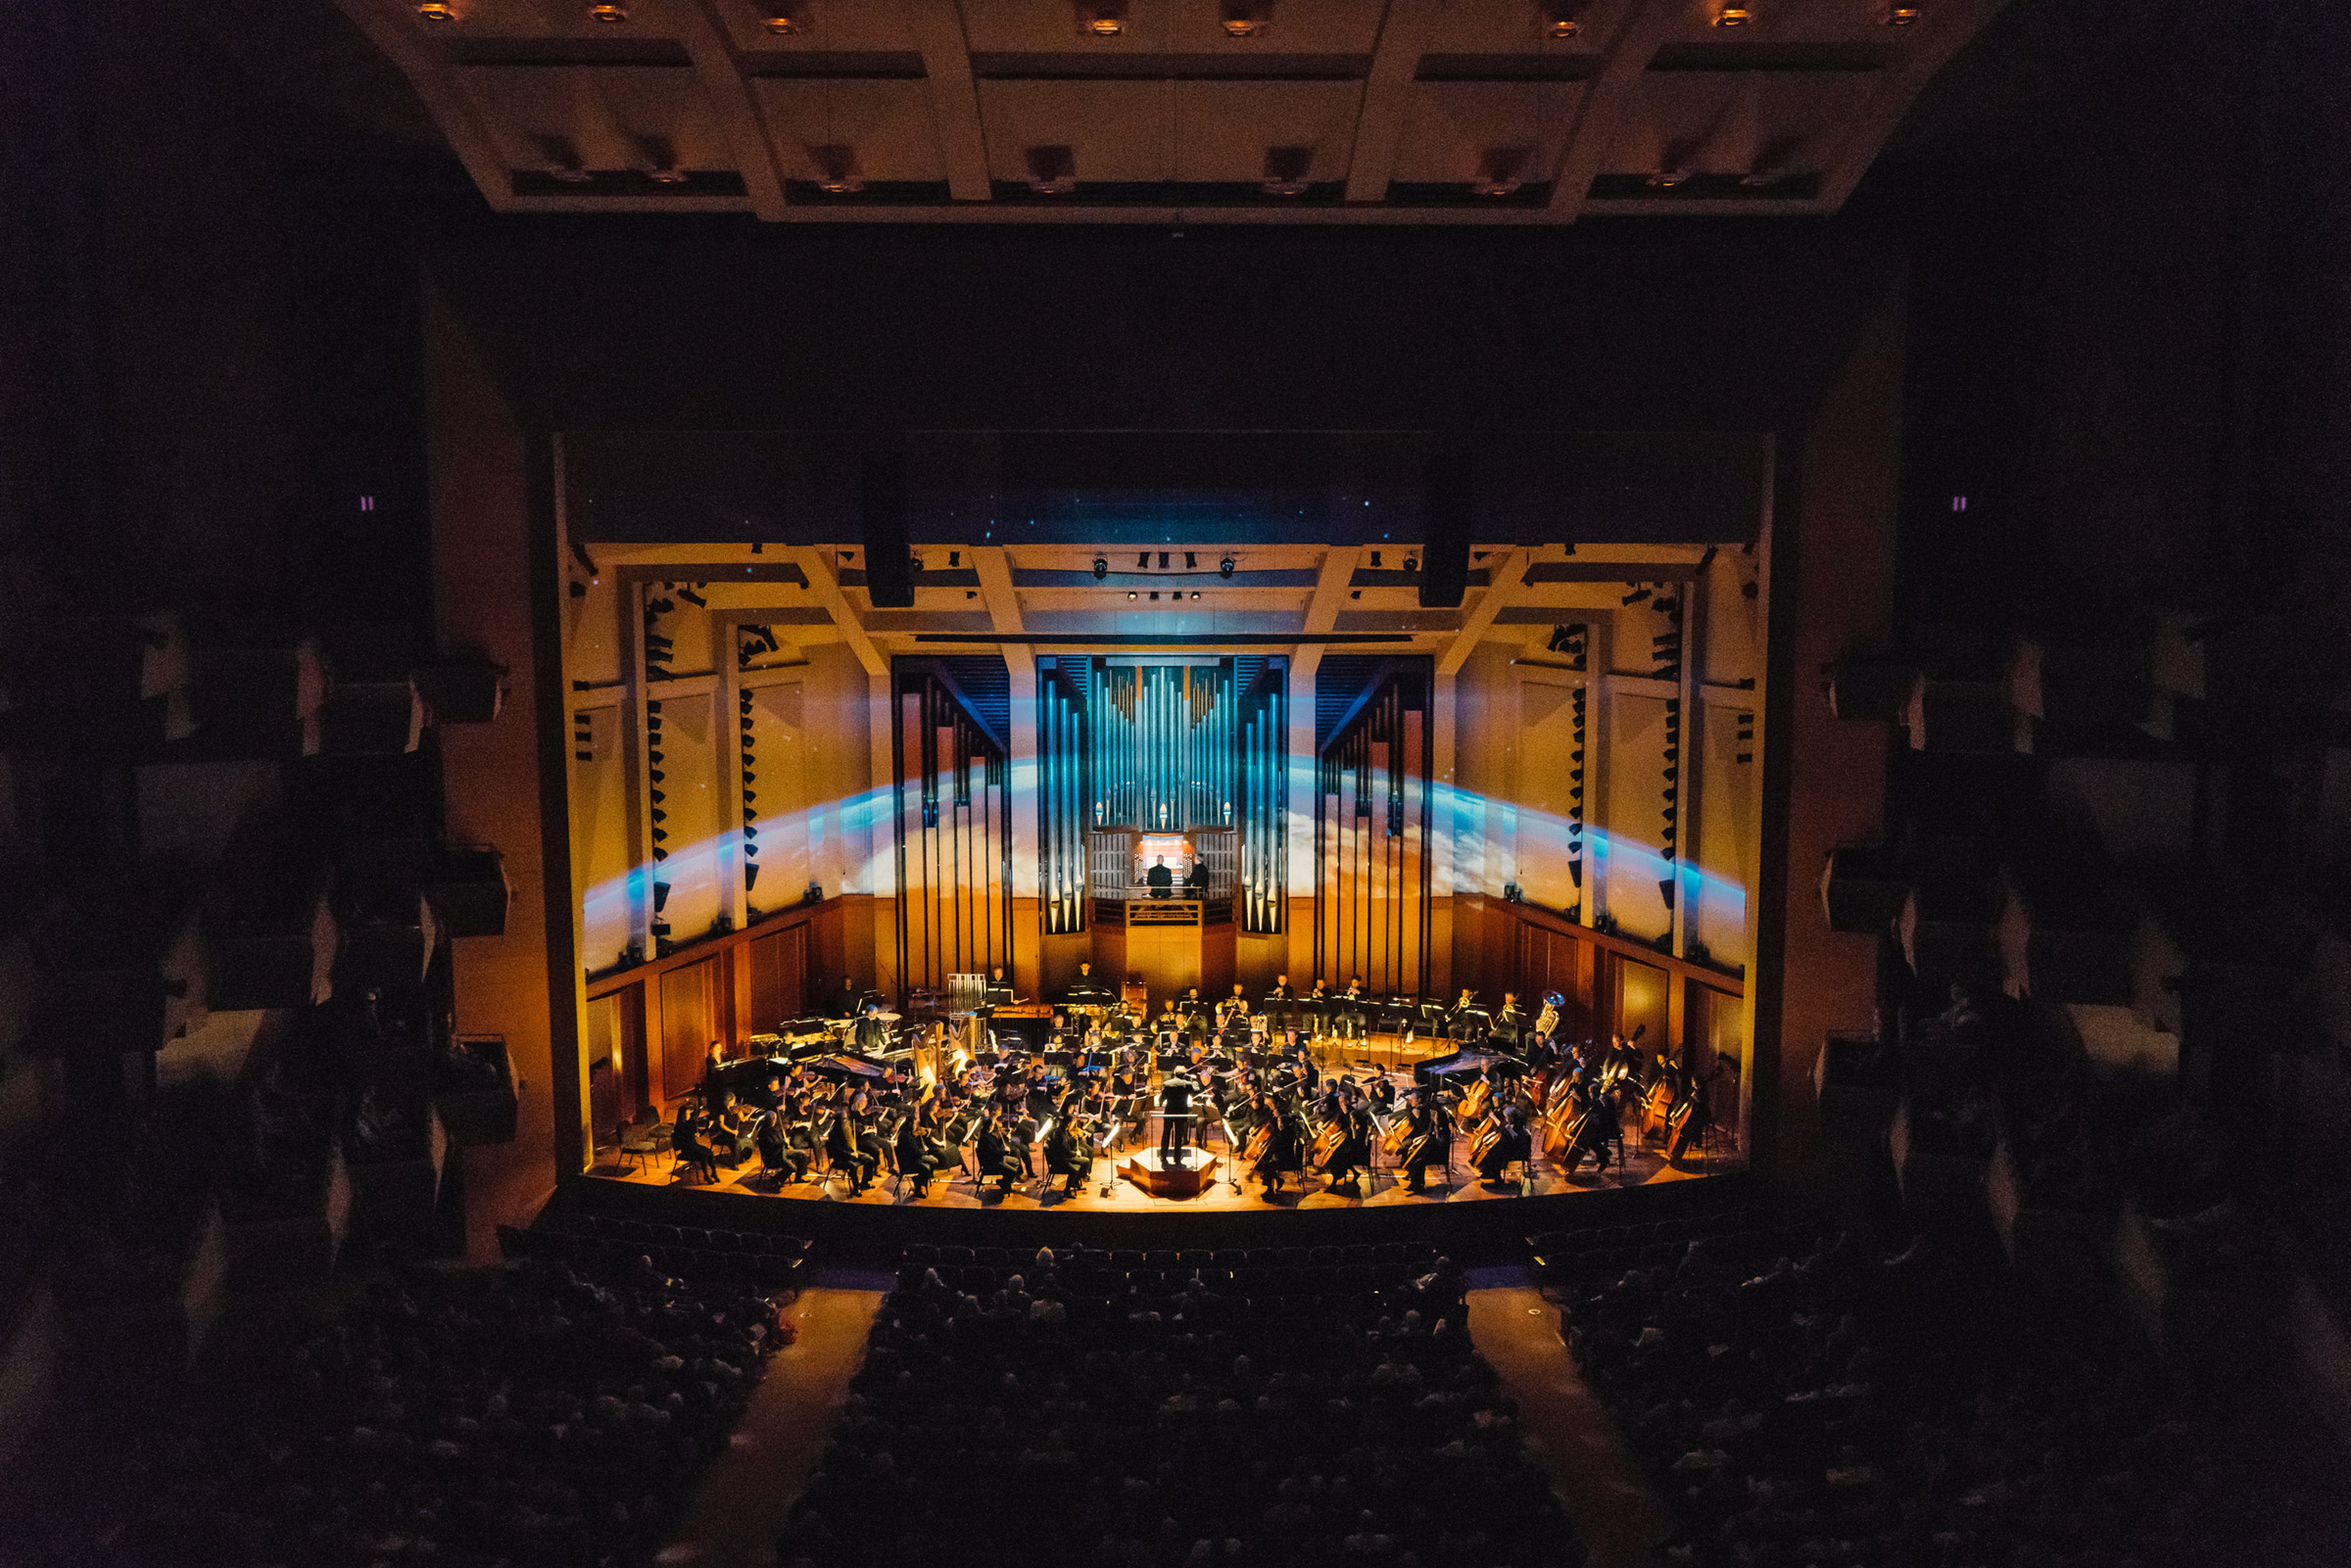 seattle-symphony-orchestra-brandon-patoc-colorful-lighting-02.JPG